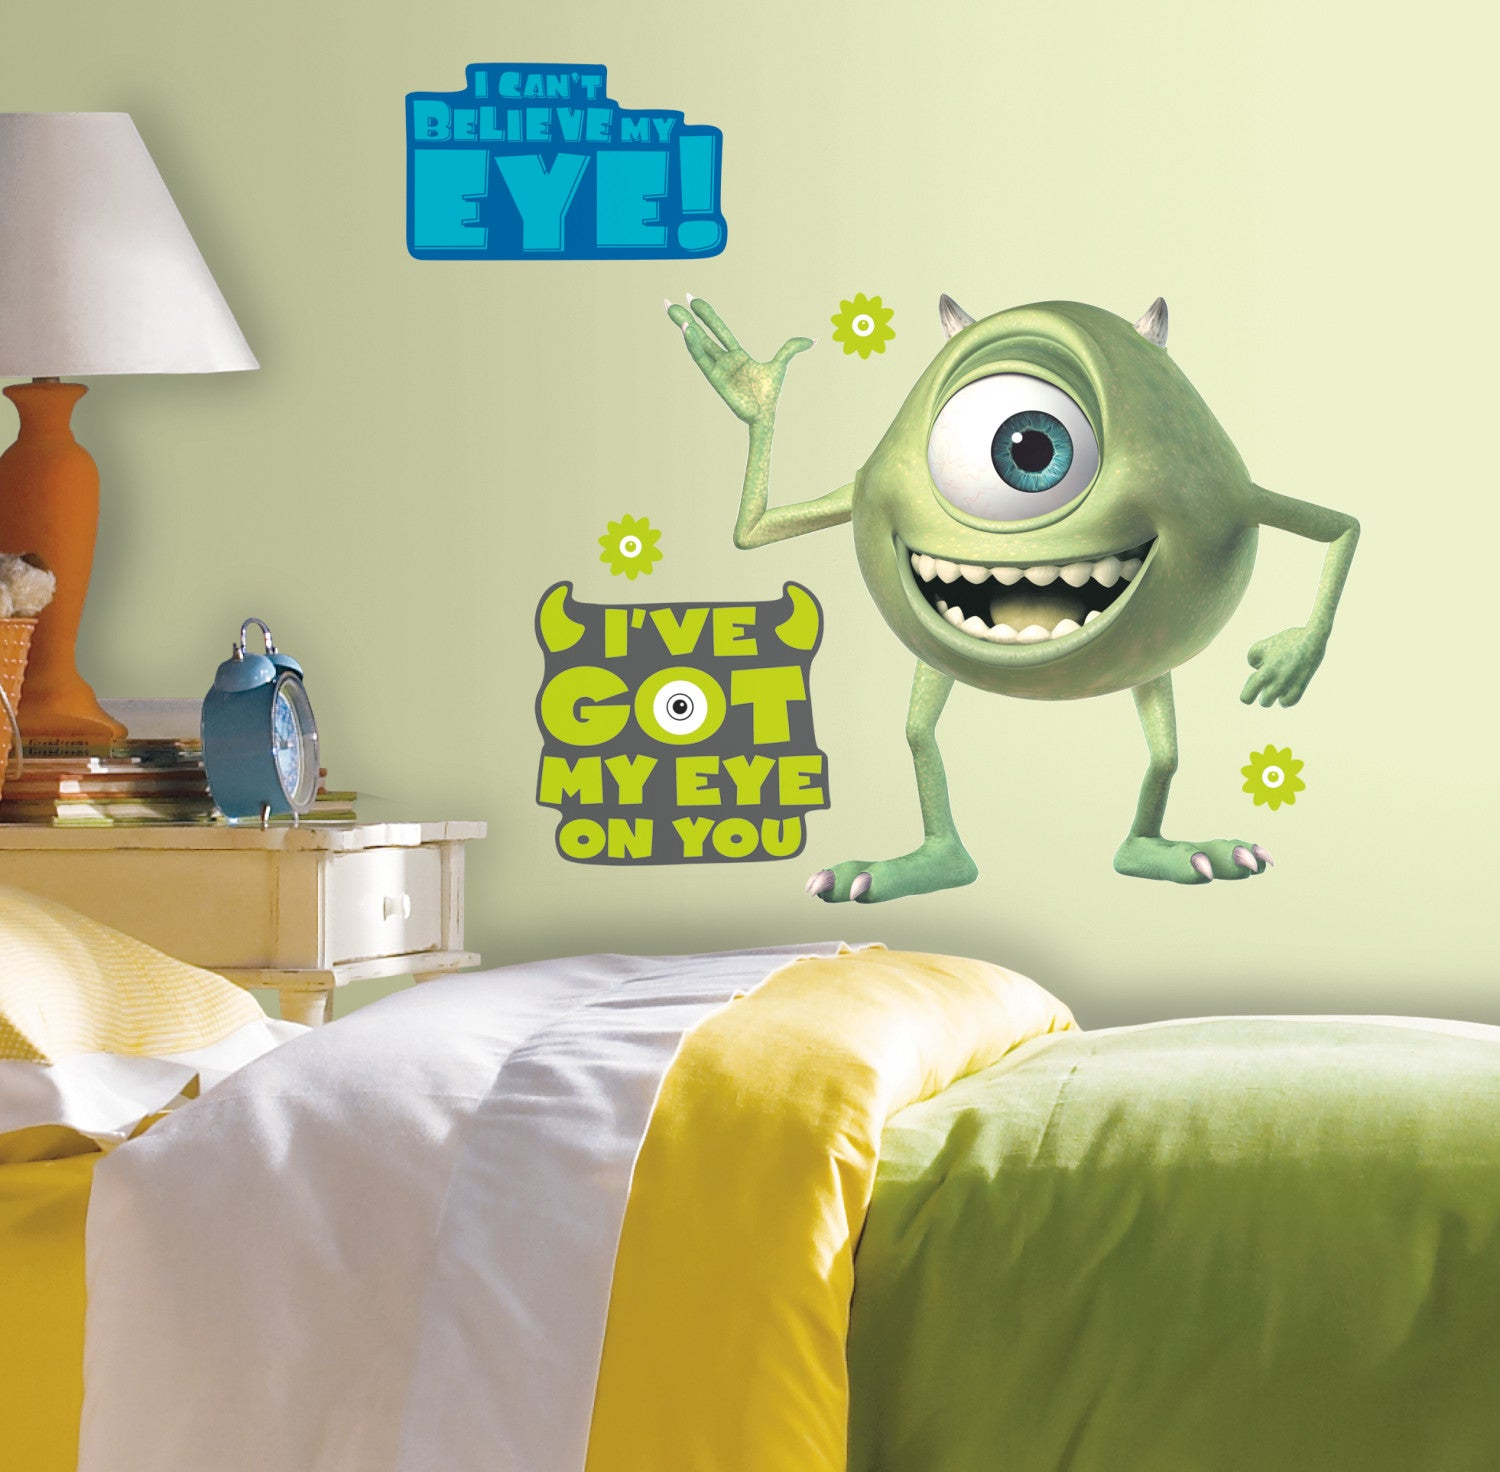 Monsters inc giant mike wazowski peel stick wall decals monsters inc giant mike wazowski peel stick wall decals amipublicfo Choice Image